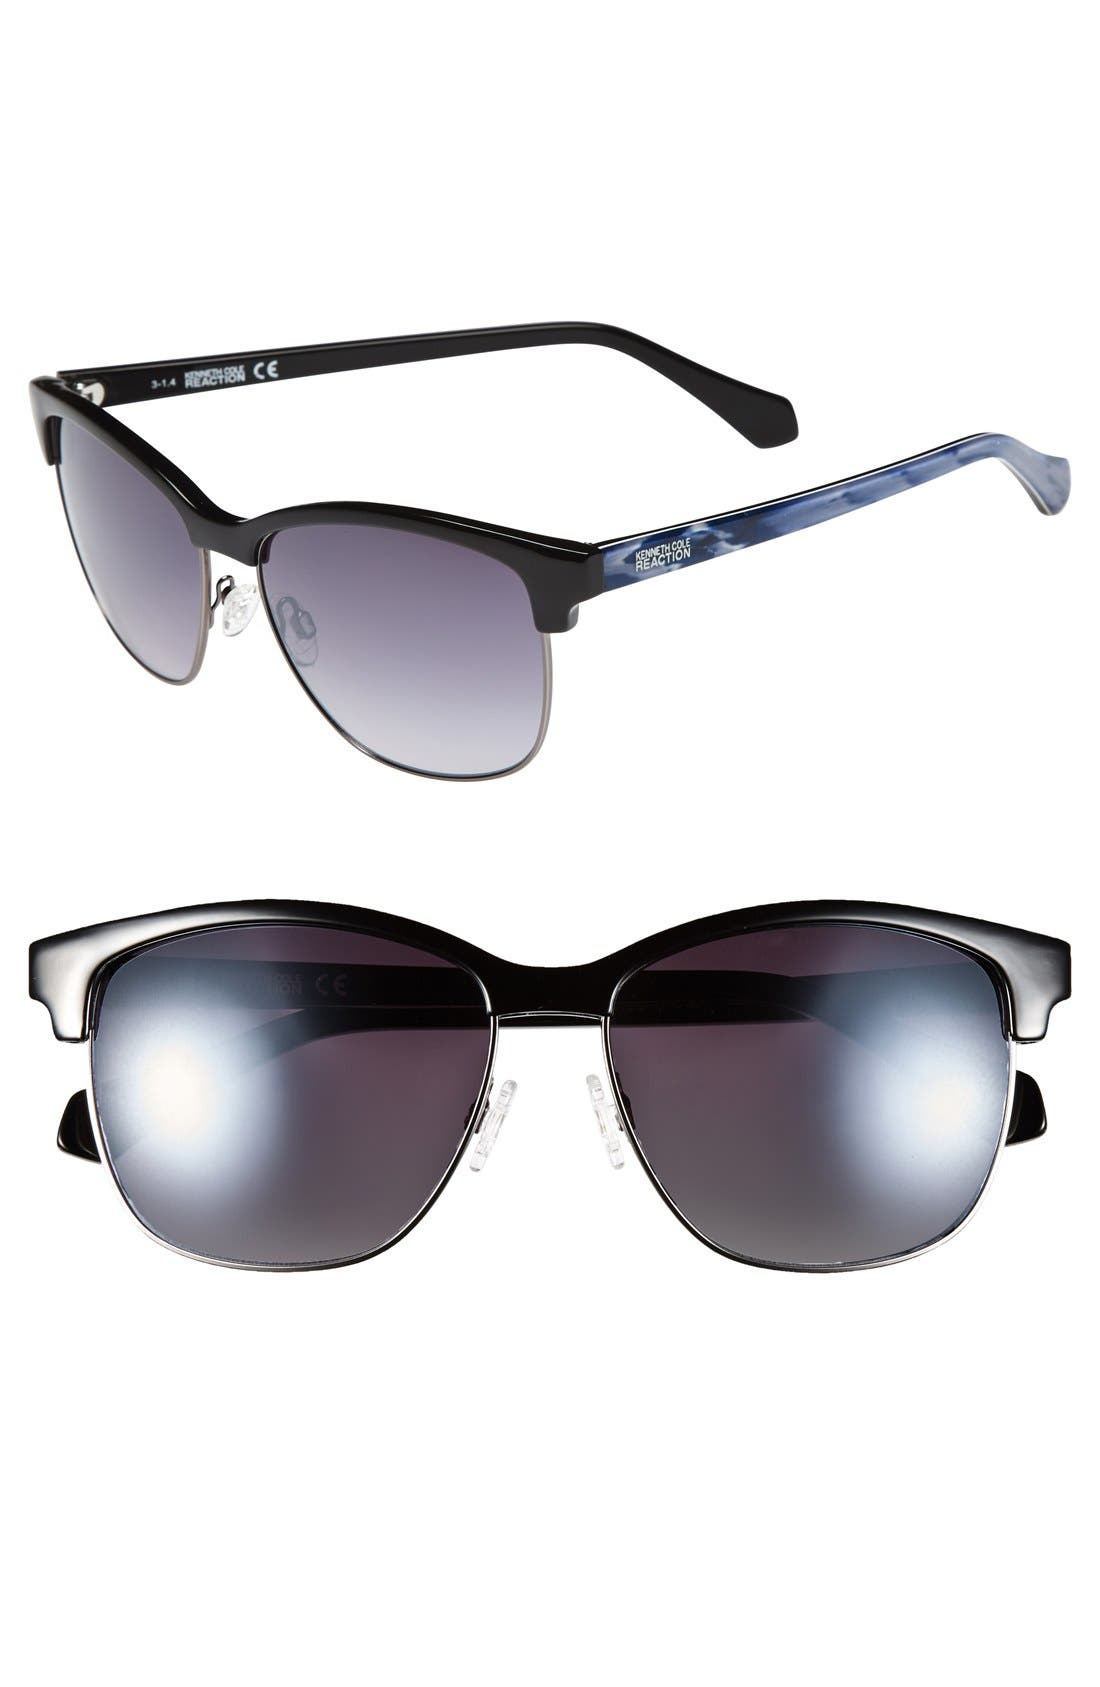 Main Image - Kenneth Cole Reaction 'Clubmaster' 57mm Sunglasses